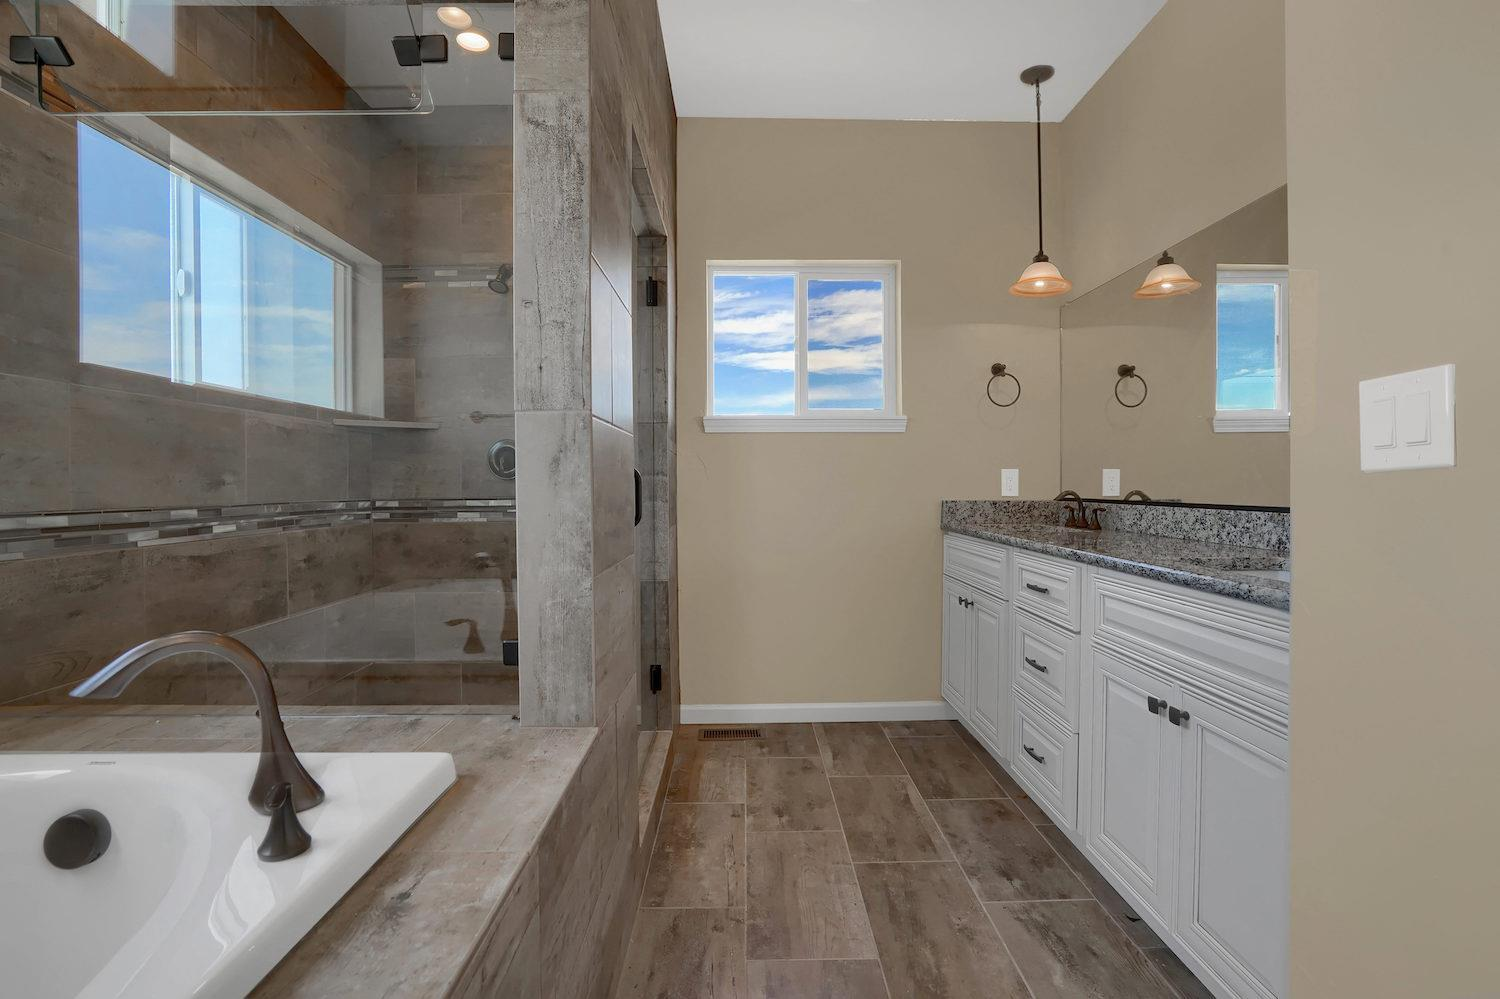 Bathroom featured in the Addison C By Wildernest in Colorado Springs, CO